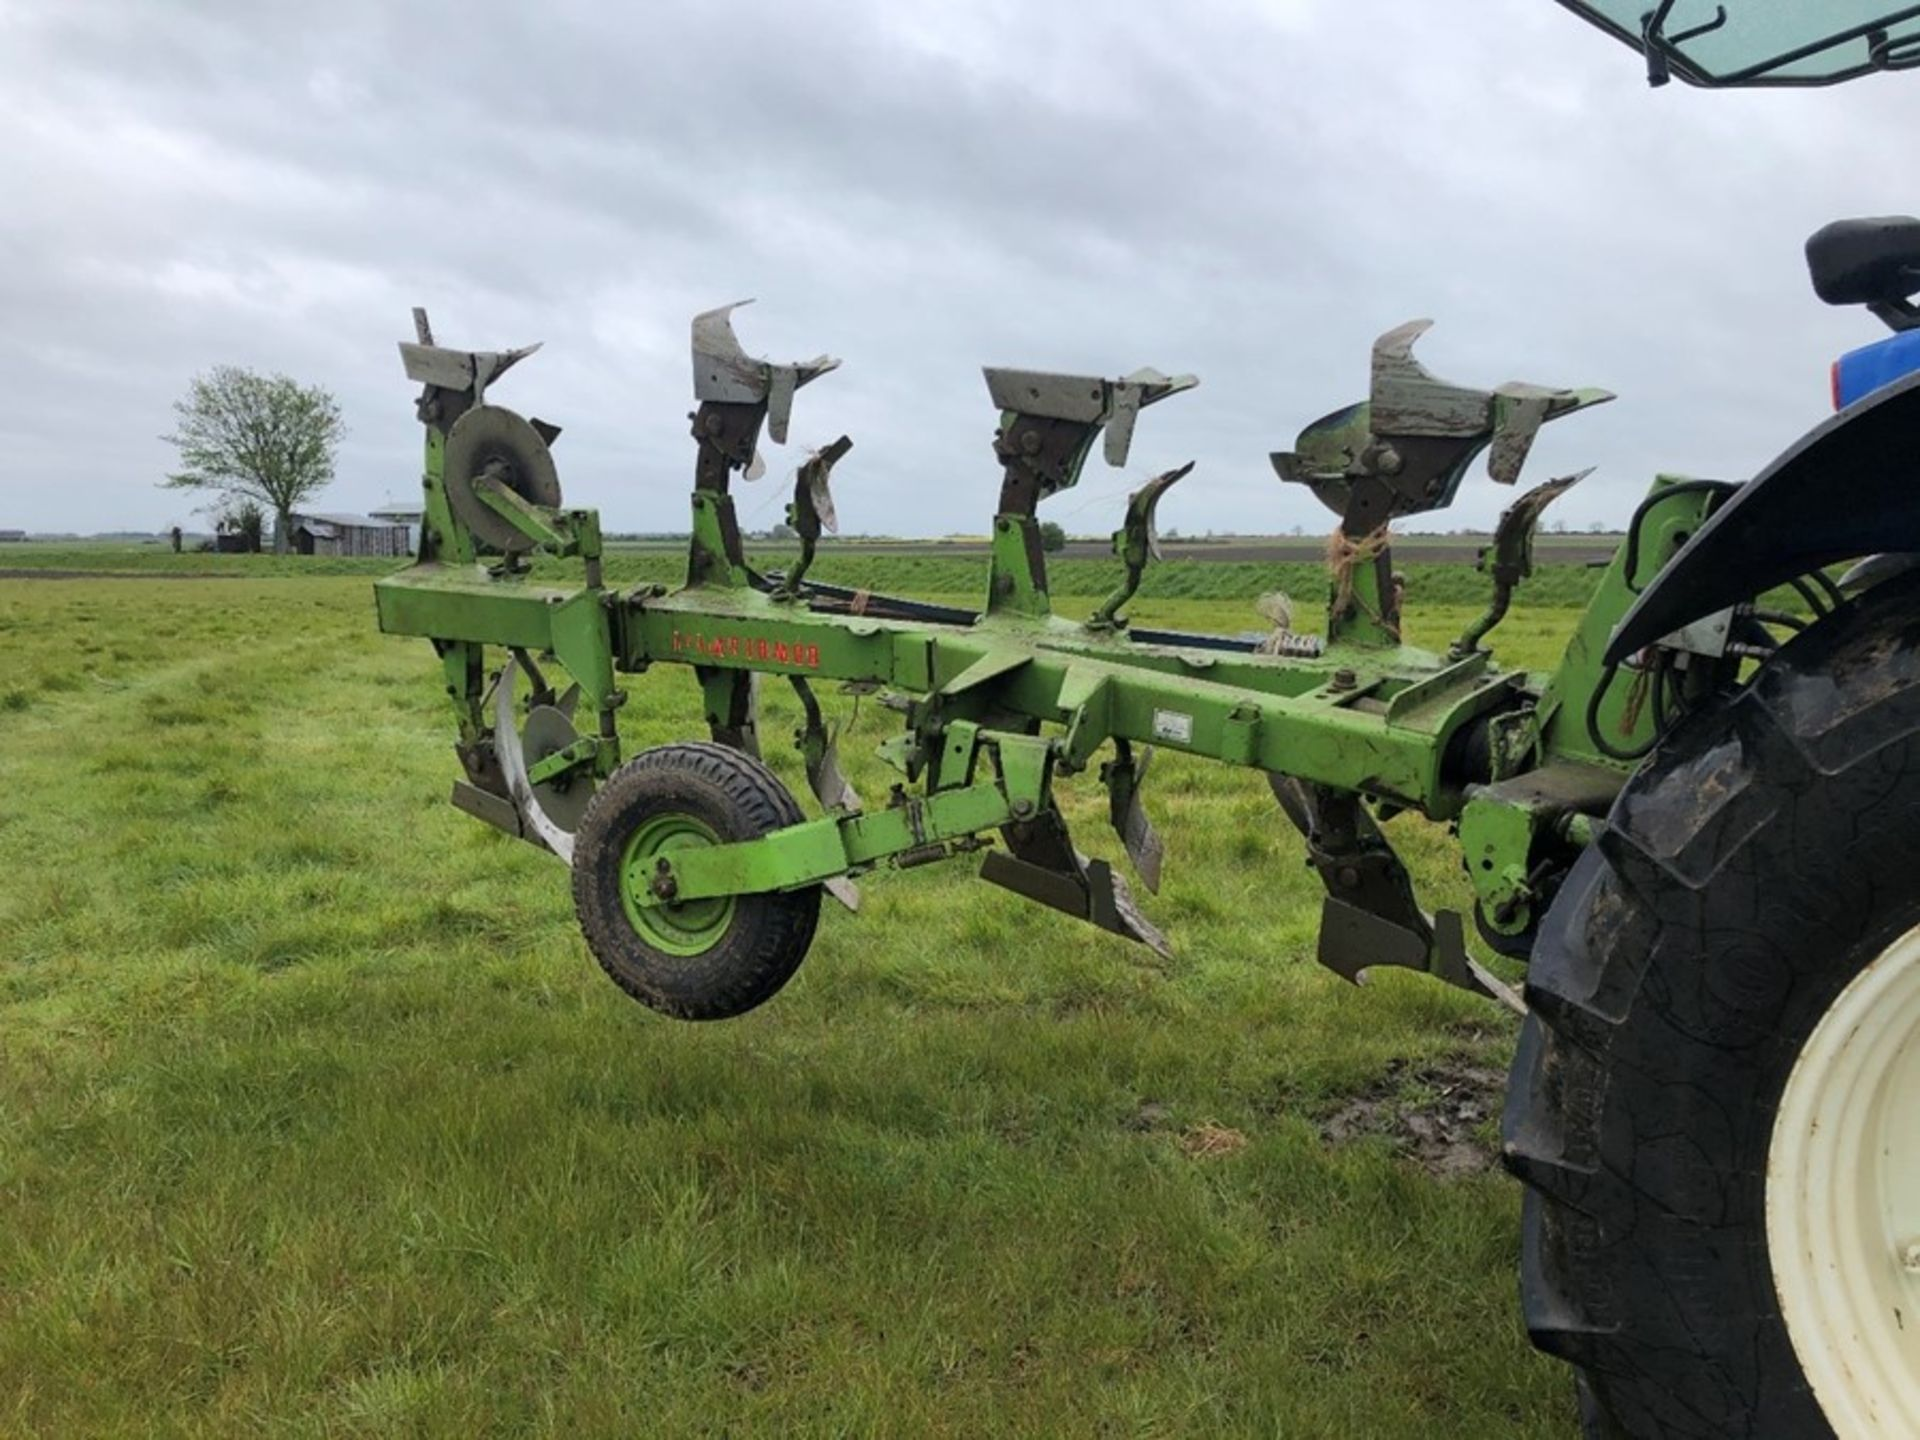 Dowdeswell DP7C 4F reversible plough, 3+1 frame, serial no: 514341496, manual in office - Image 3 of 3